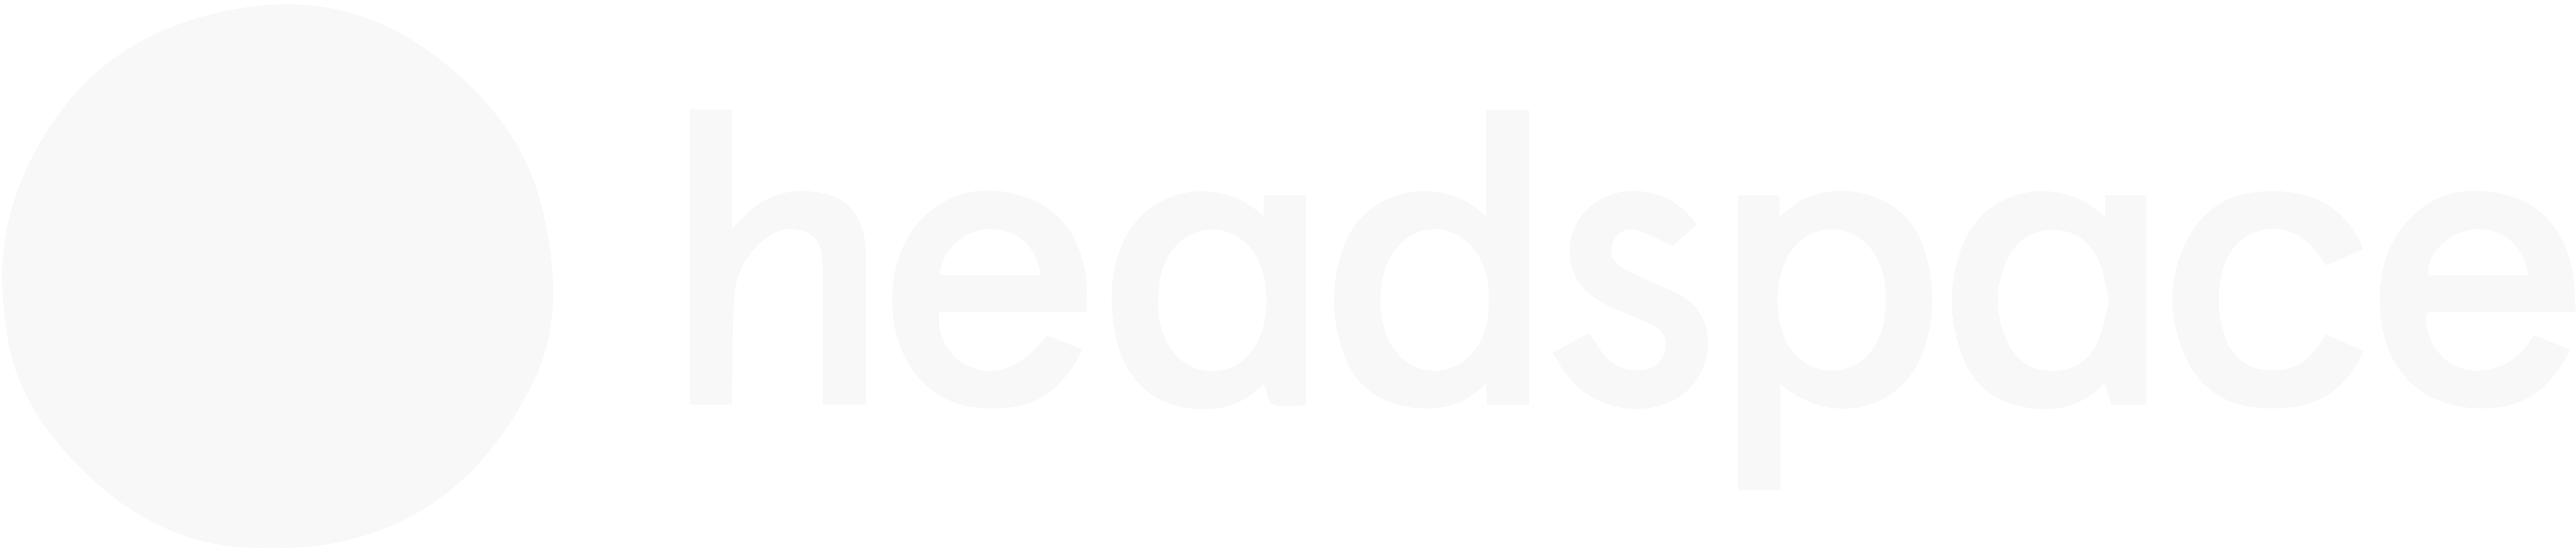 """A headspace logo that says """"headspace"""" with a white circle to the left."""